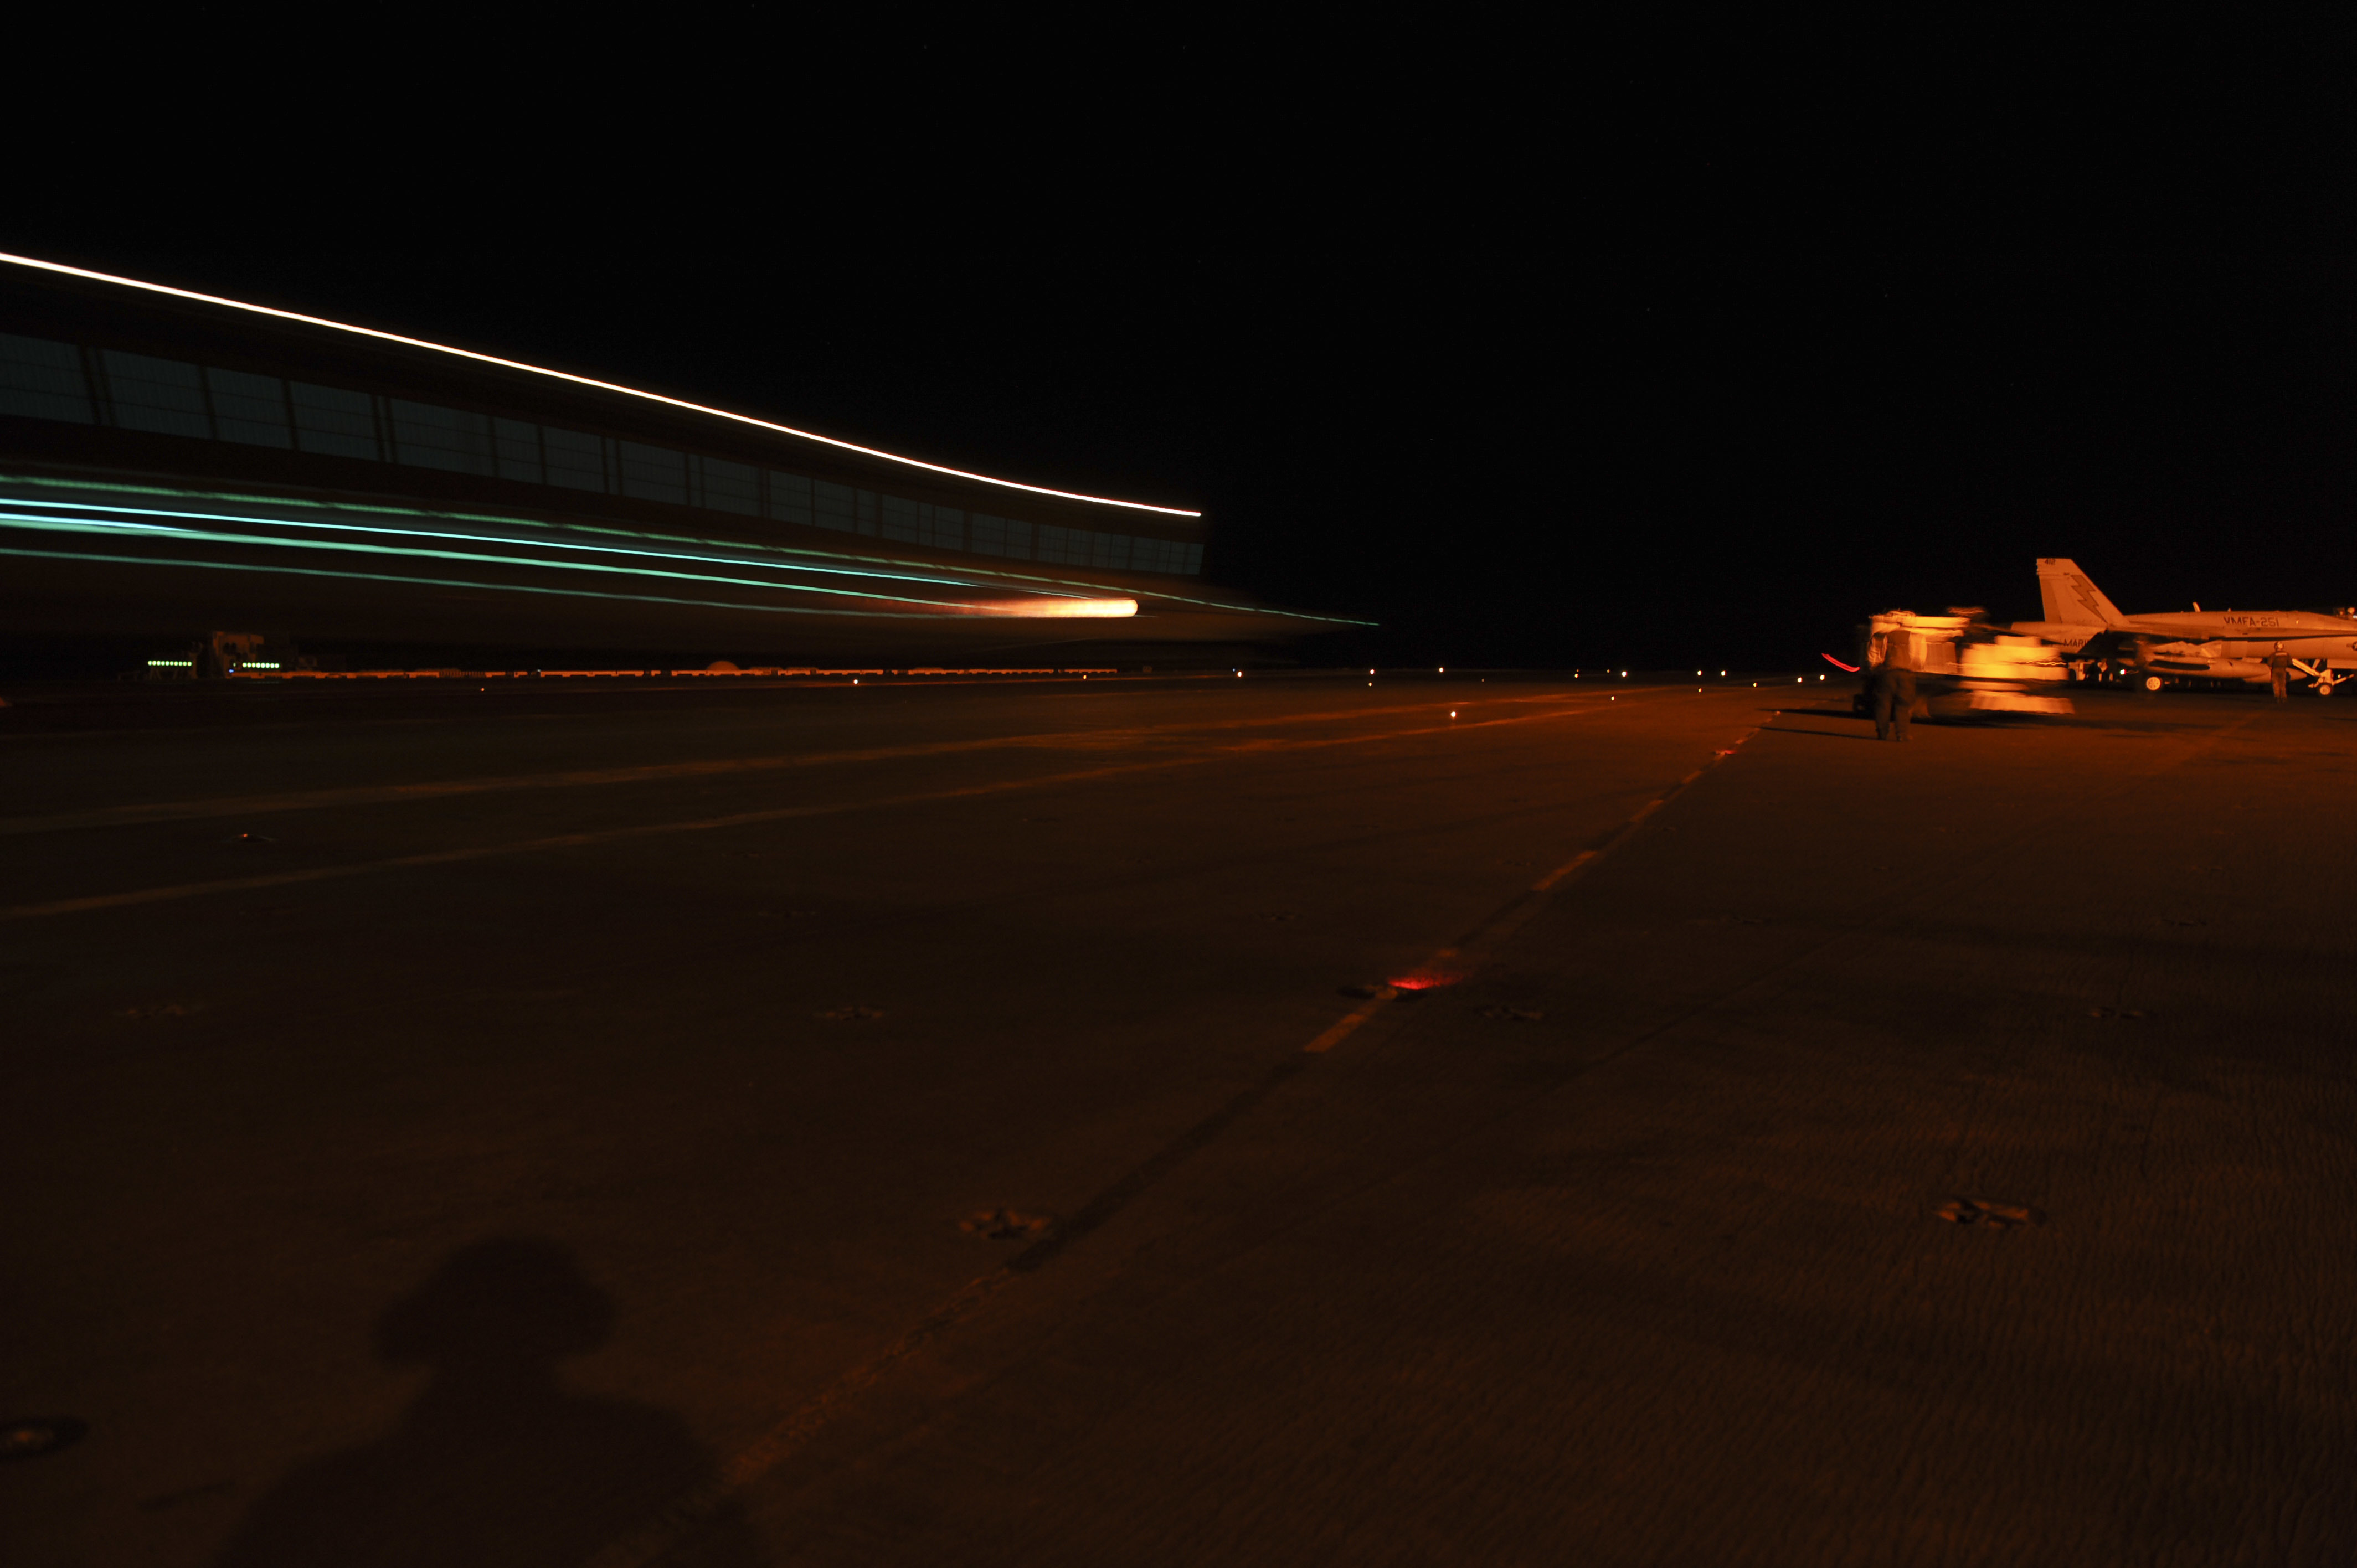 151002-N-ZF498-345 ARABIAN GULF (Oct. 2, 2015) – An F/A-18C Hornet assigned to the Thunderbolts of Marine Strike Fighter Squadron (VMFA) 251 lands on the flight deck aboard the aircraft carrier USS Theodore Roosevelt (CVN 71). Theodore Roosevelt is deployed in the U.S. 5th Fleet area of operations supporting Operation Inherent Resolve, strike operations in Iraq and Syria as directed, maritime security operations and theater security cooperation efforts in the region. (U.S. Navy photo by Mass Communication Specialist 3rd Class Anthony N. Hilkowski/Released)